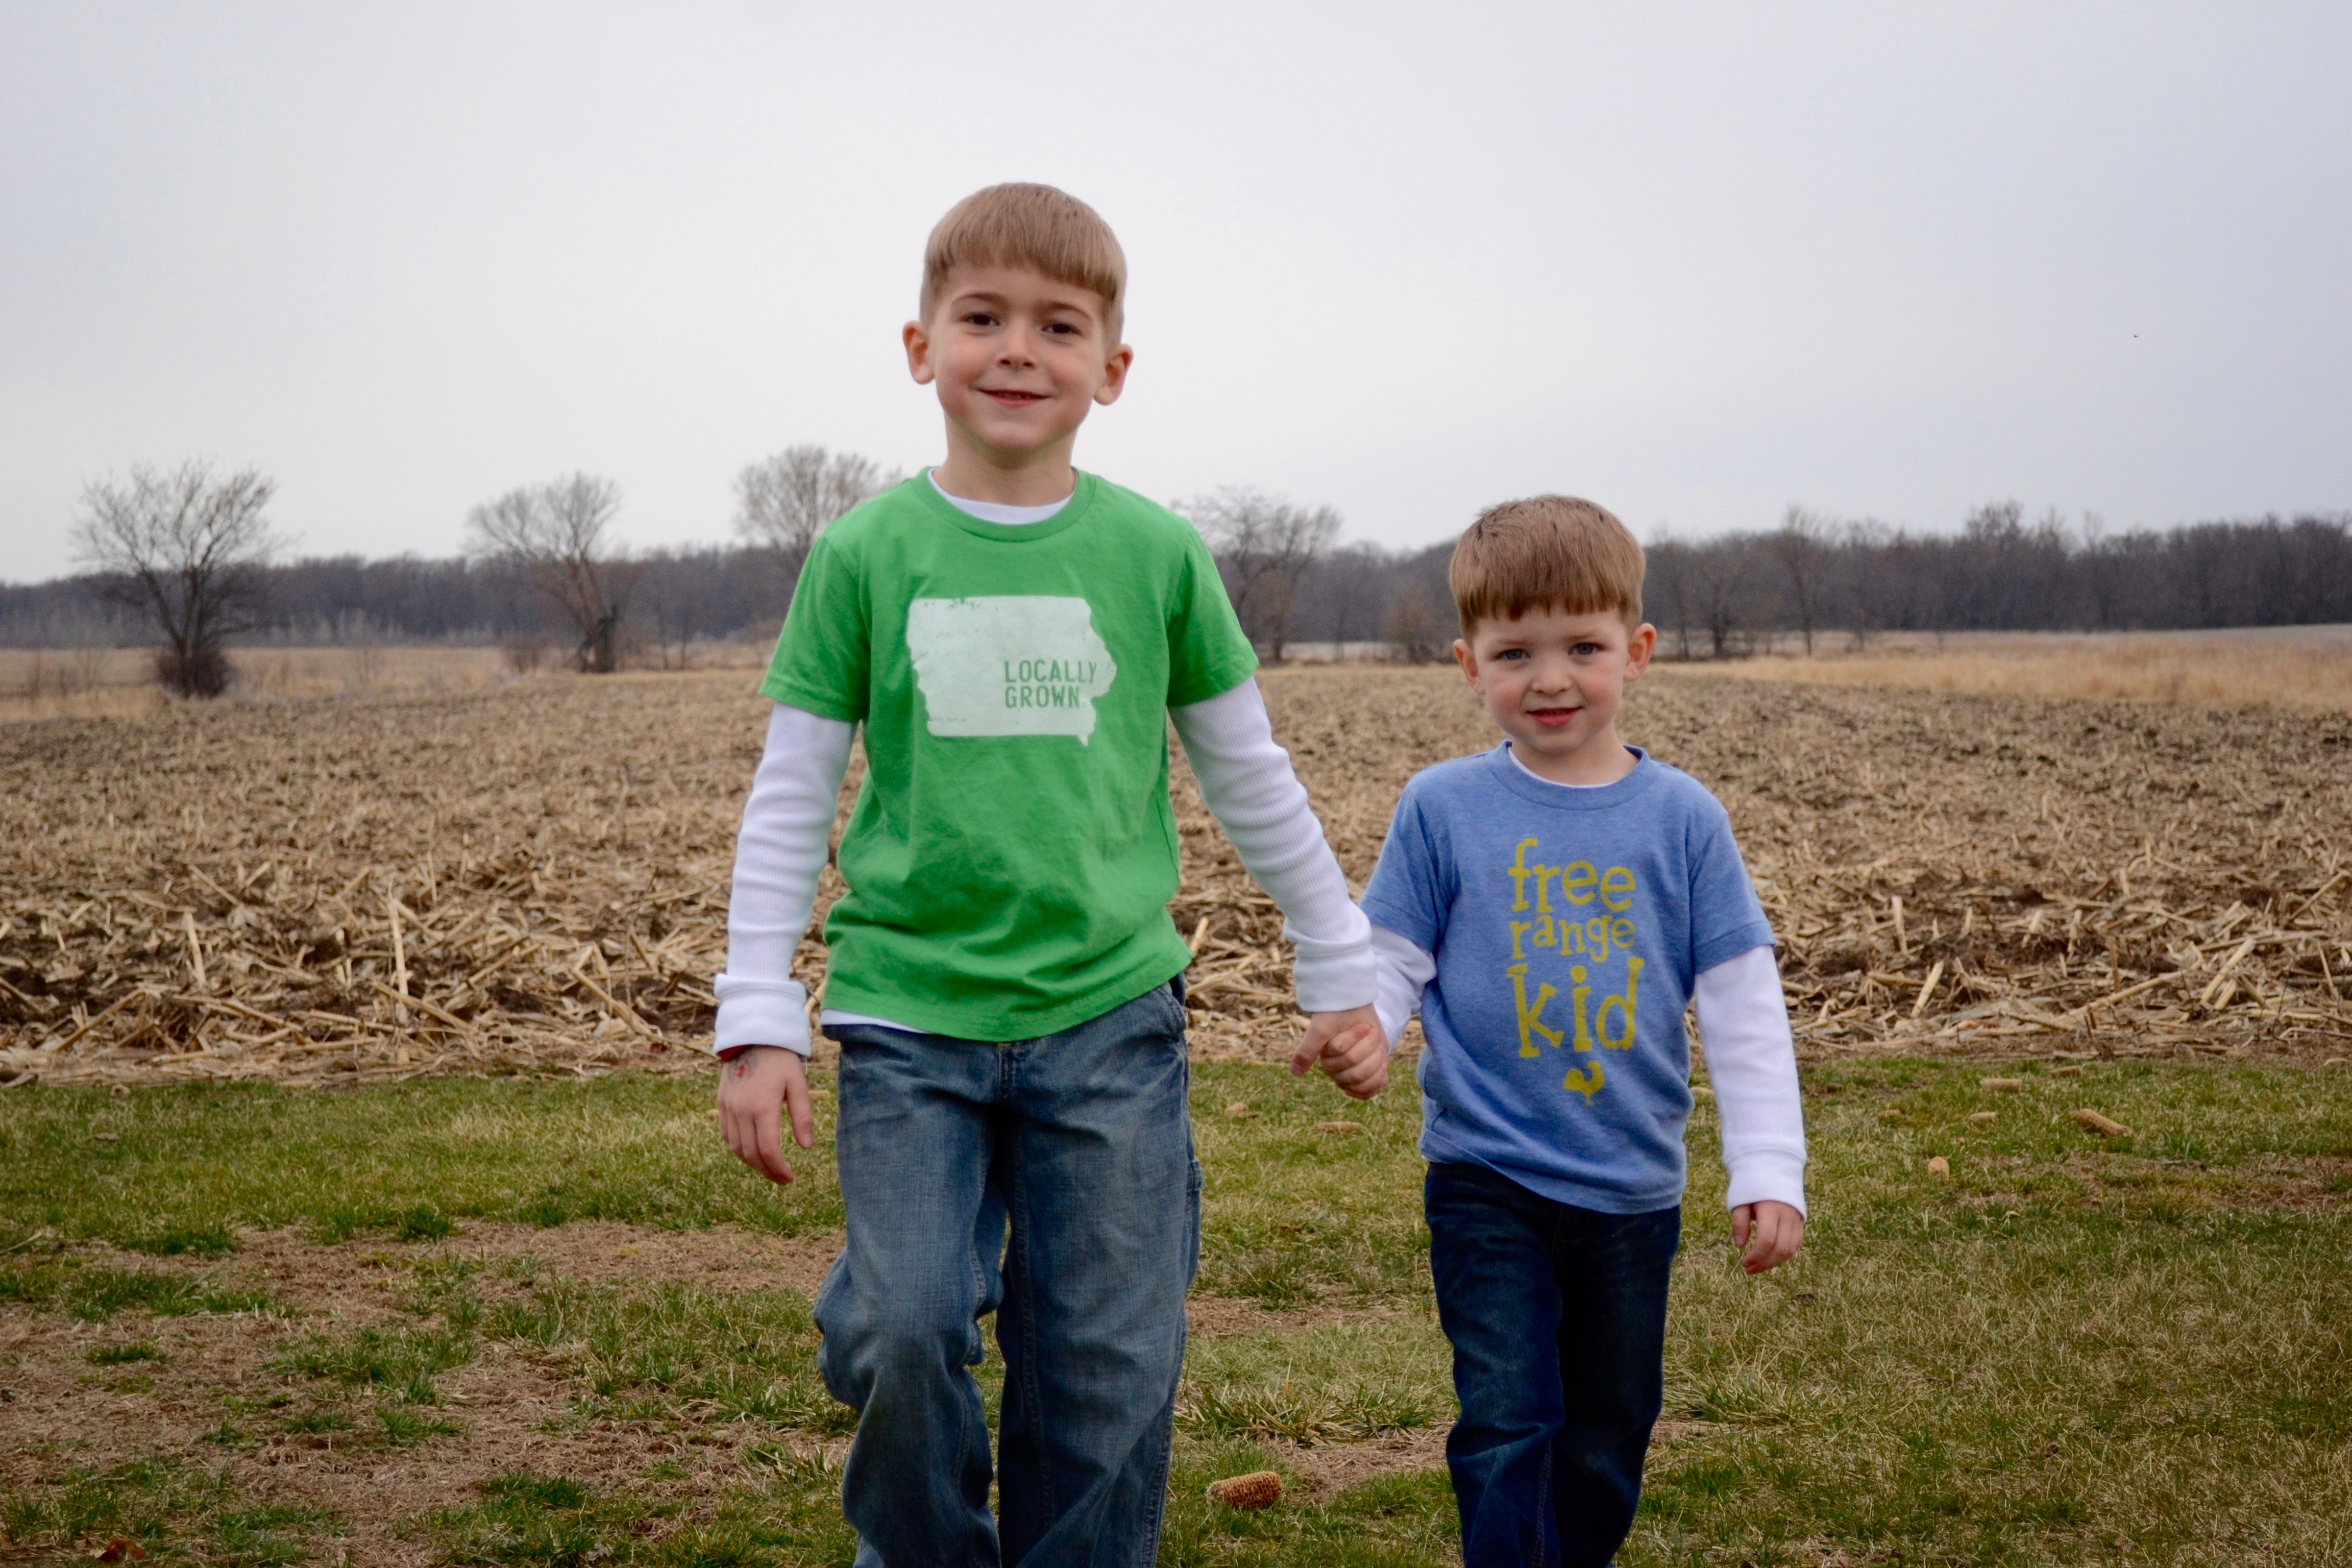 hatchlings_hens_locally_grown_shirt_kids